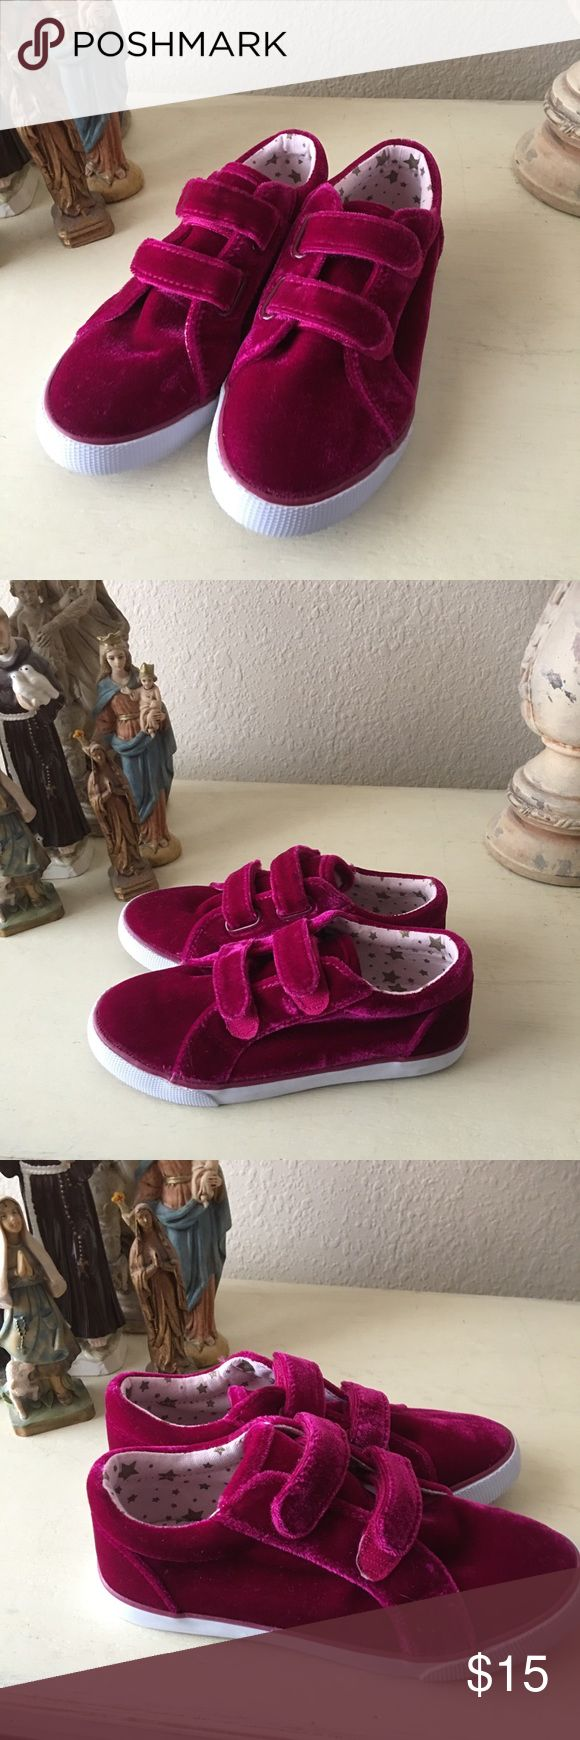 Cat & Jack Fuchsia Velvet Sneakers Super cool, Size 12. Girls Fuchsia Velvet Slip On Sneakers. Velcro straps for easy on and off. Great condition! Hot pink, magenta. Cat & Jack Shoes Sneakers